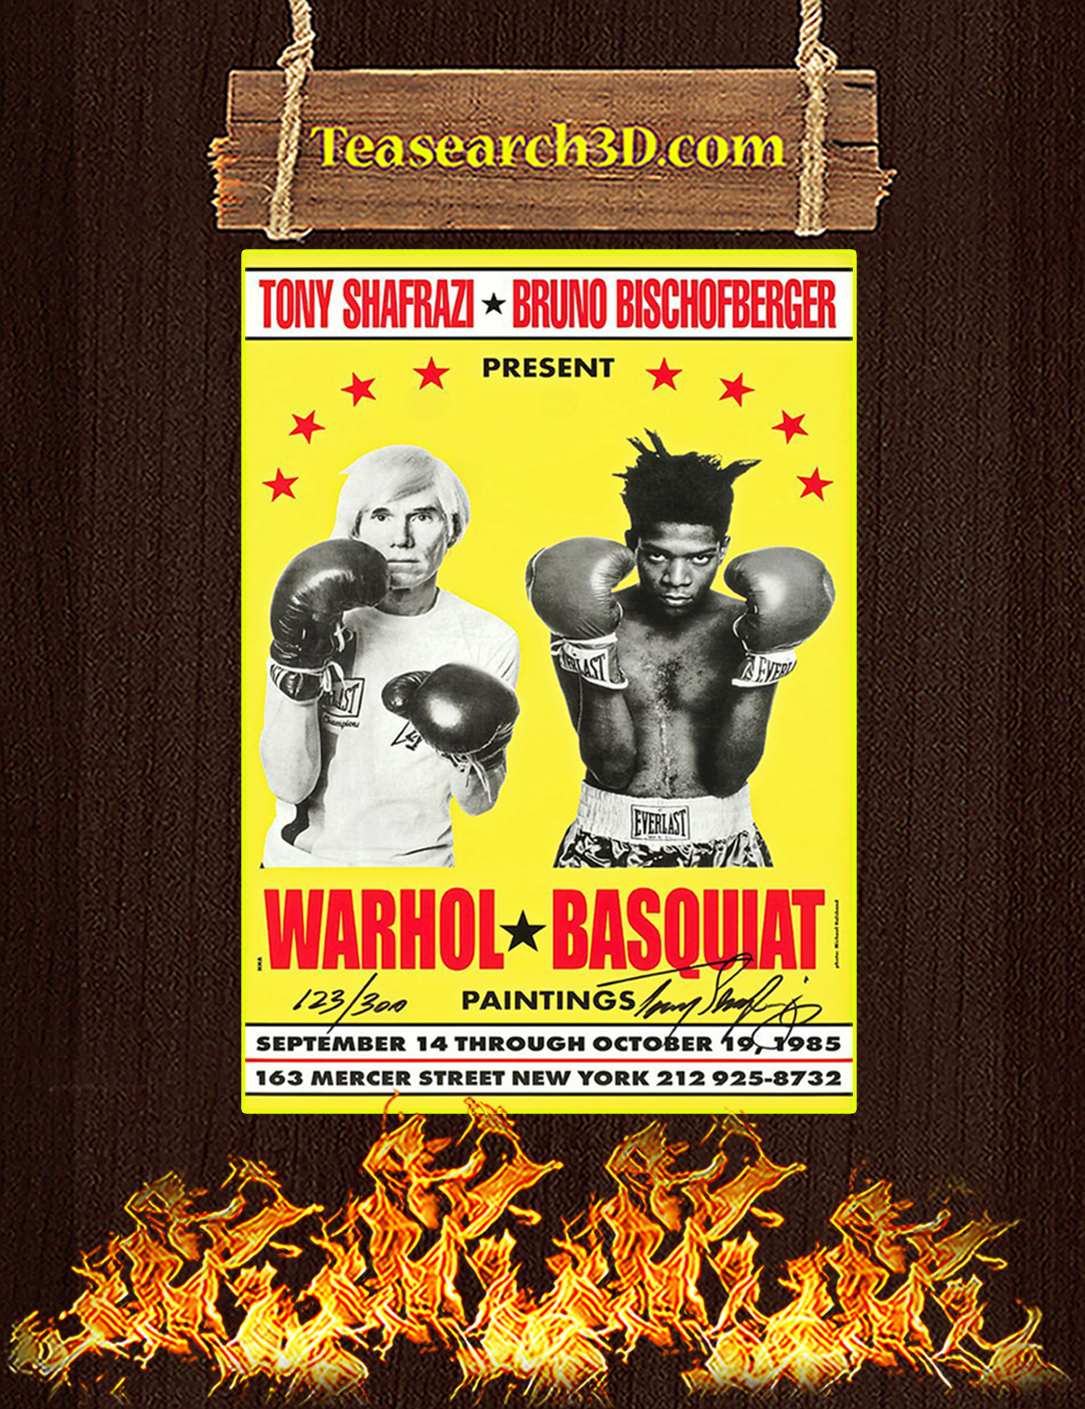 Warhol and Basquiat paintings poster A2